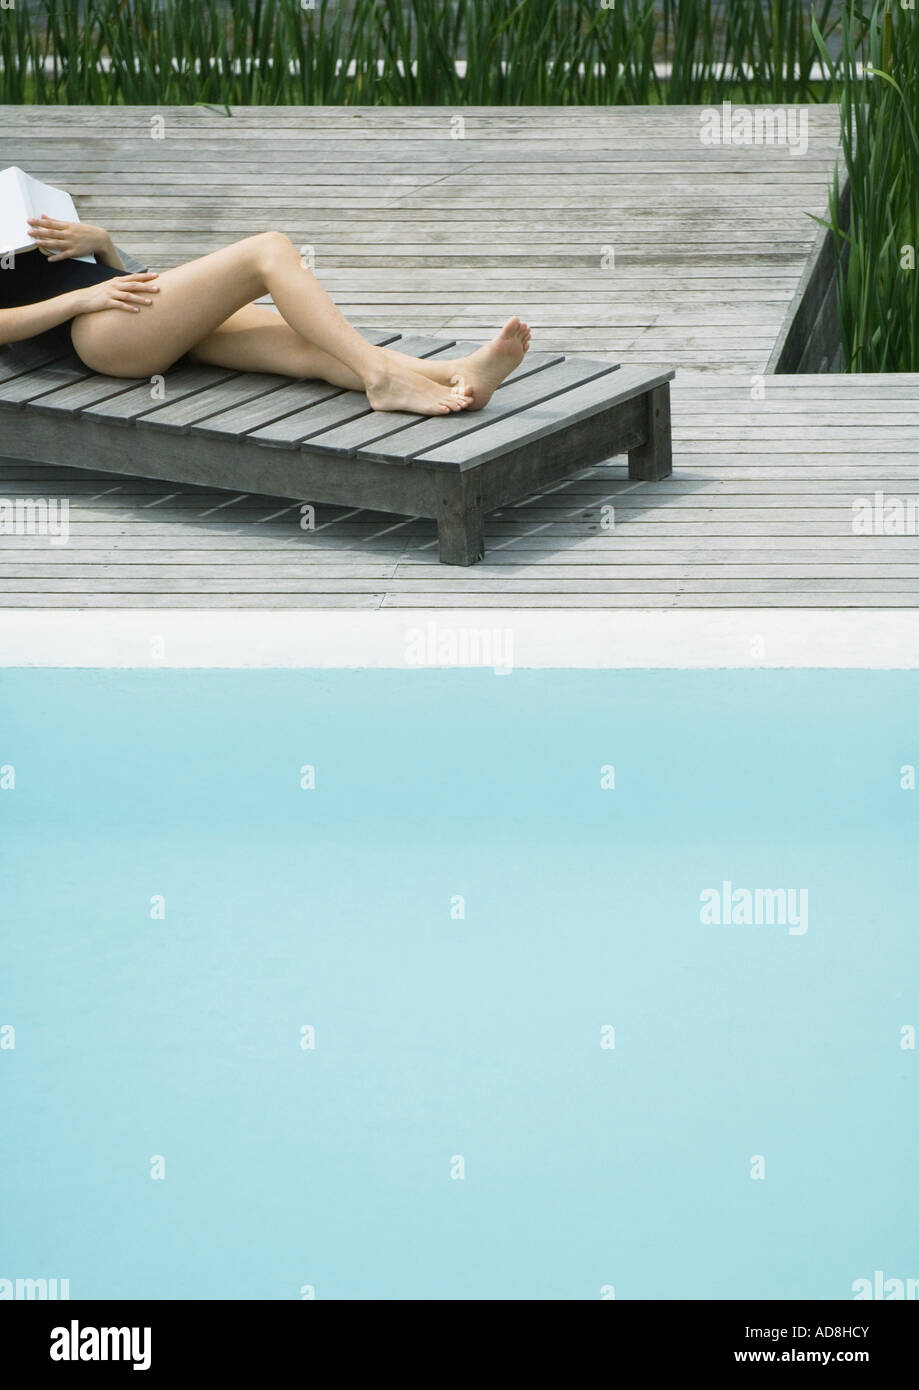 Woman reclining on lounge chair next to pool, sleeping with book on chest, cropped view - Stock Image